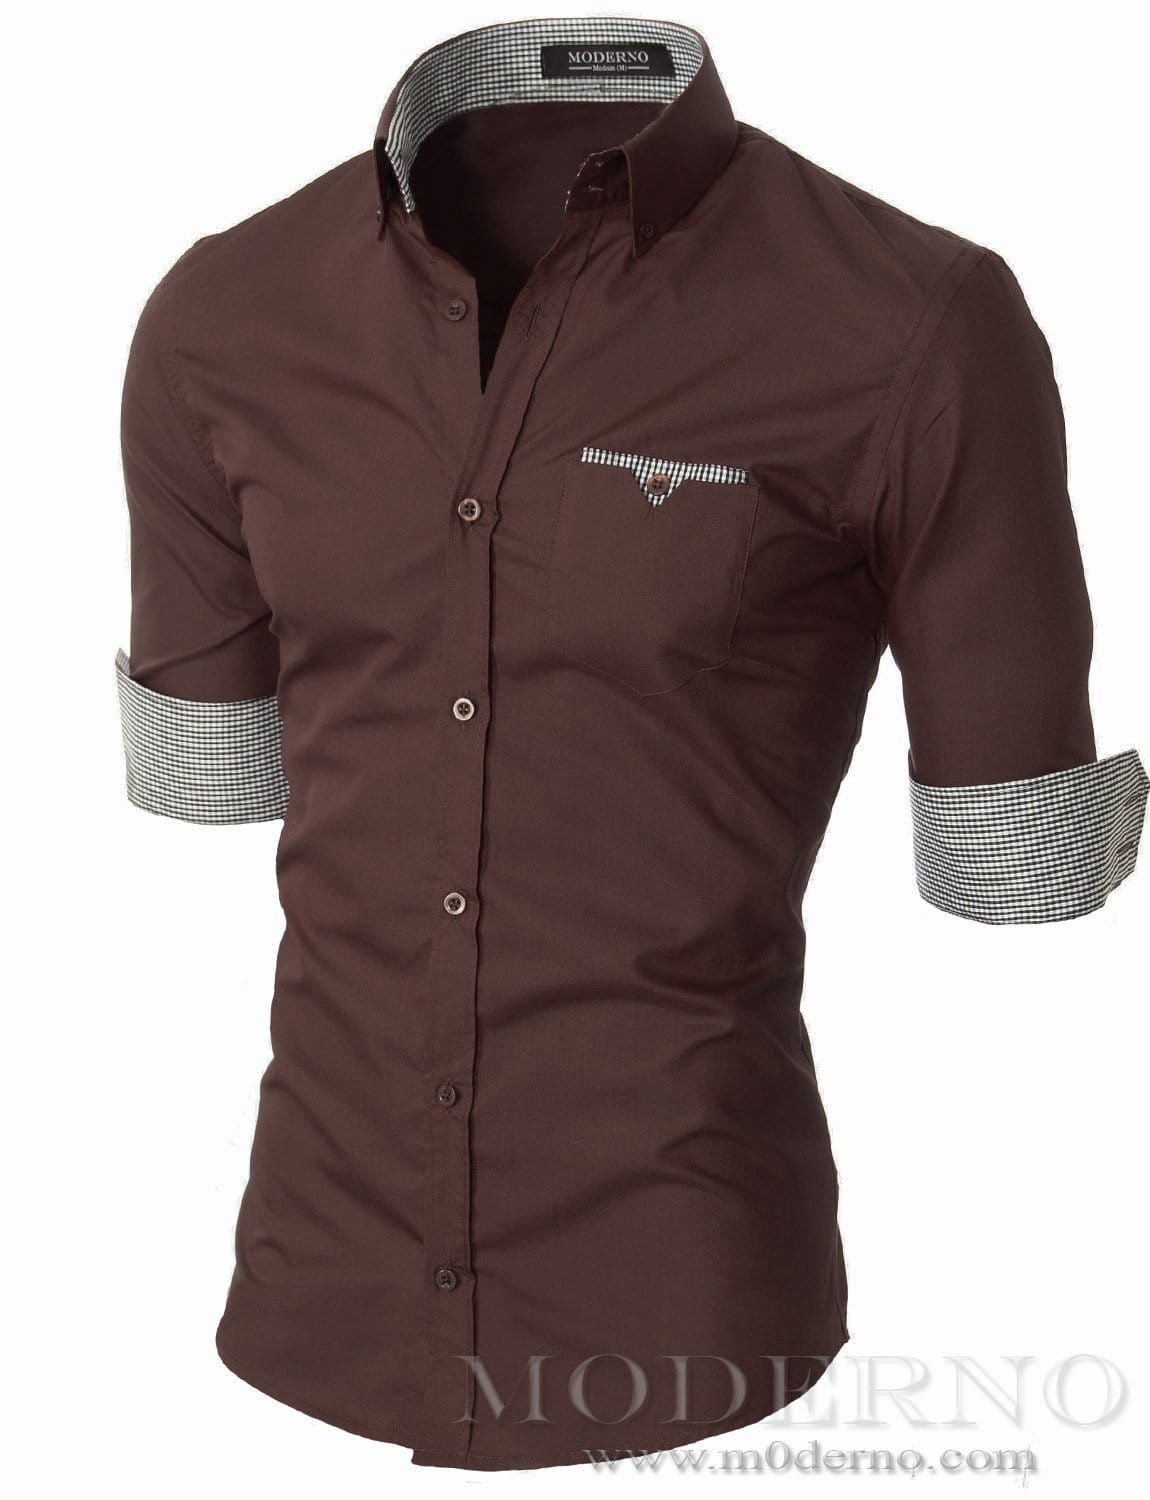 Mens slim fit long sleeve button down casual shirt brown (VGD063LS) - MODERNO